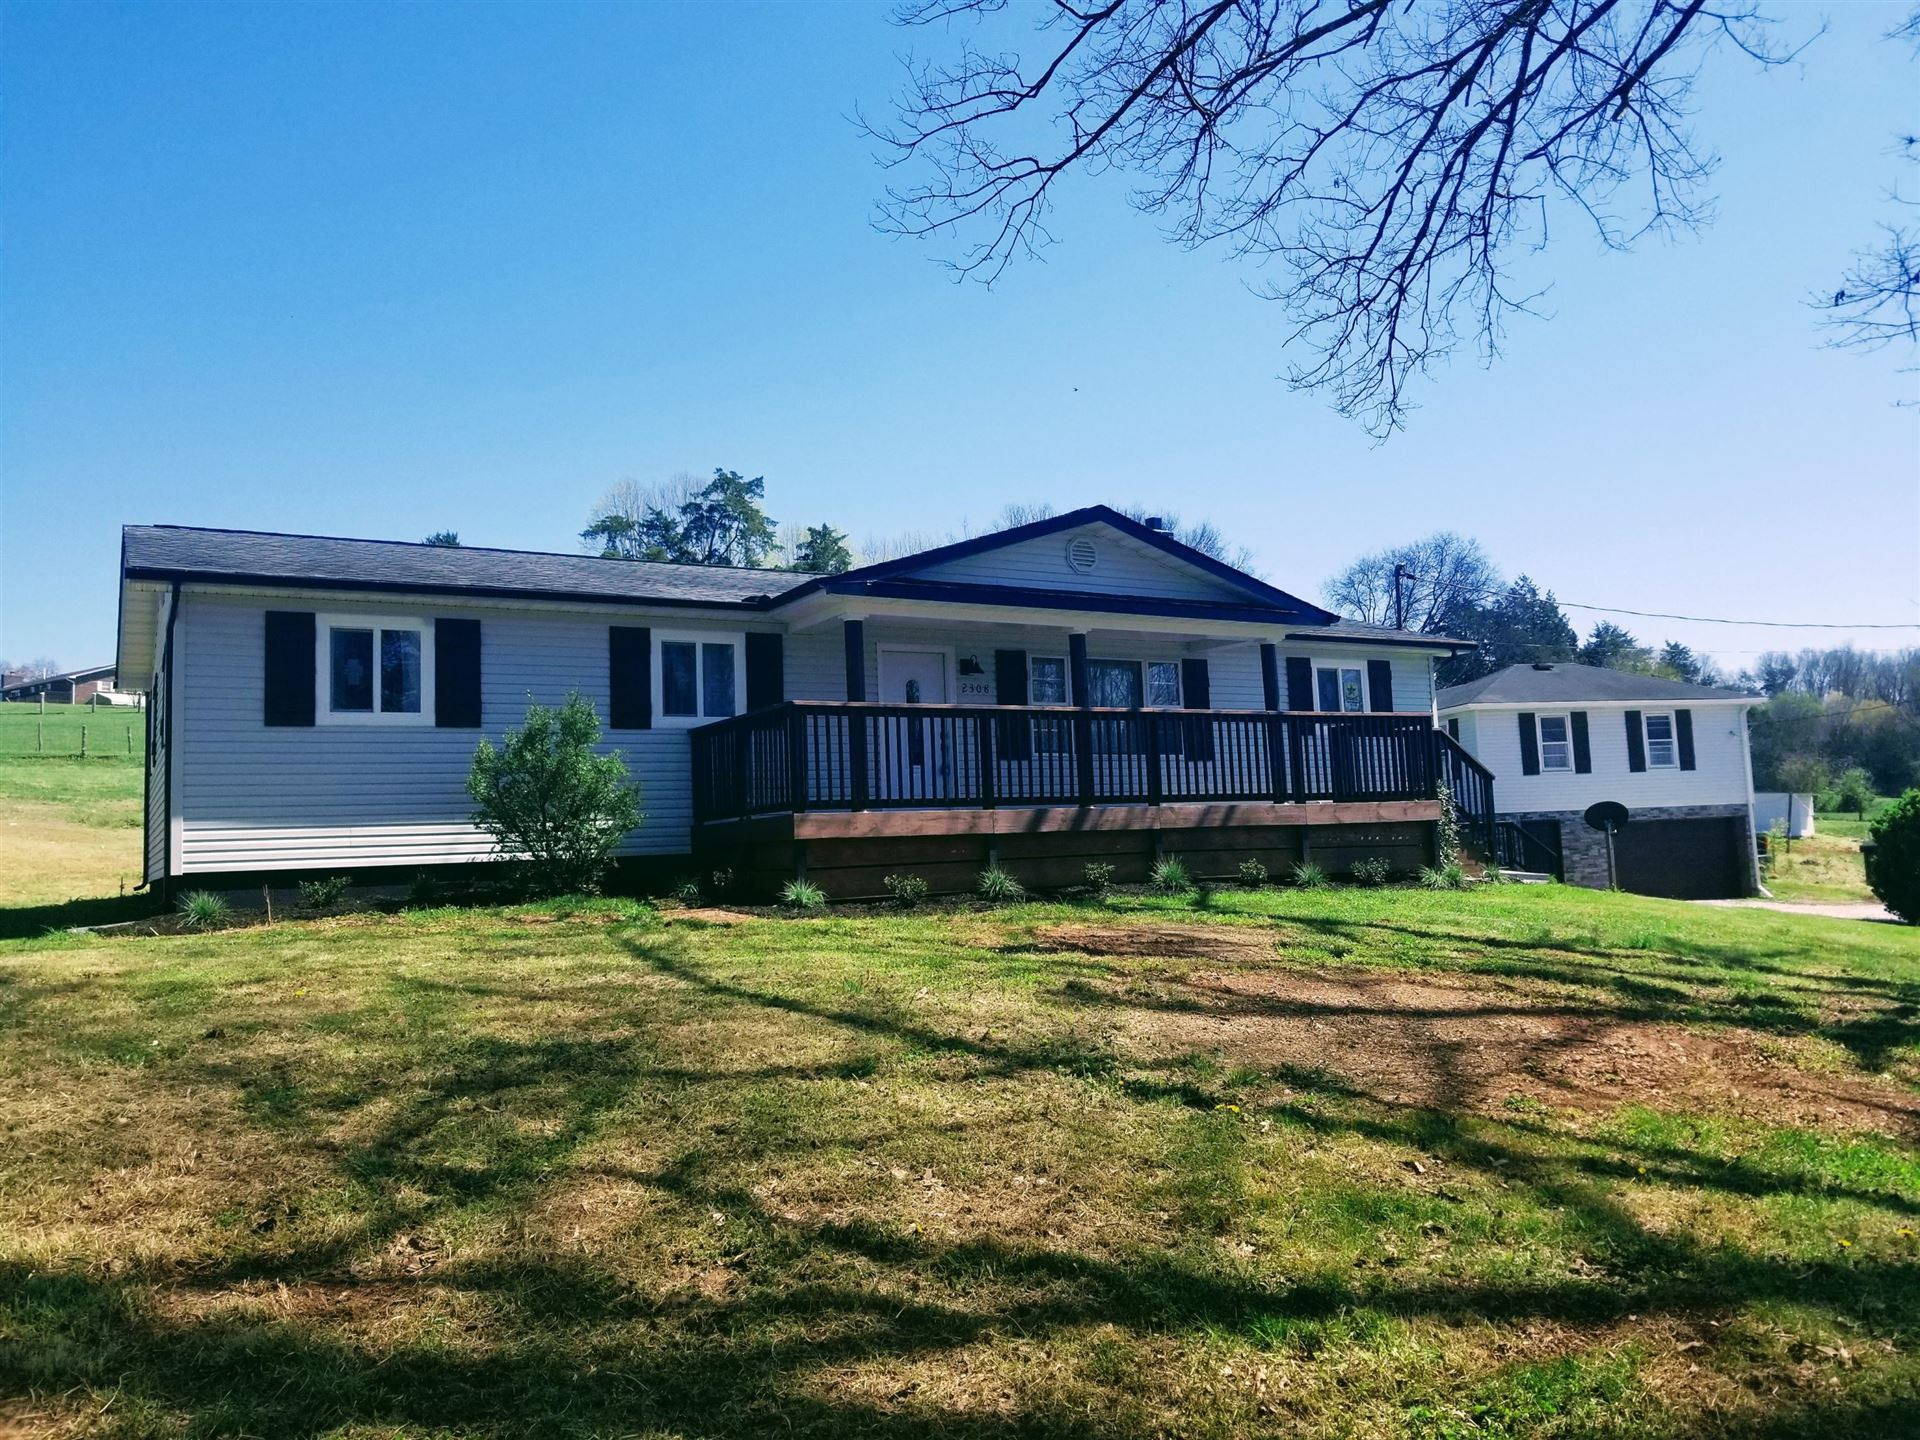 Photo of 2308 Clear Springs Rd, Mascot, TN 37806 (MLS # 1148039)